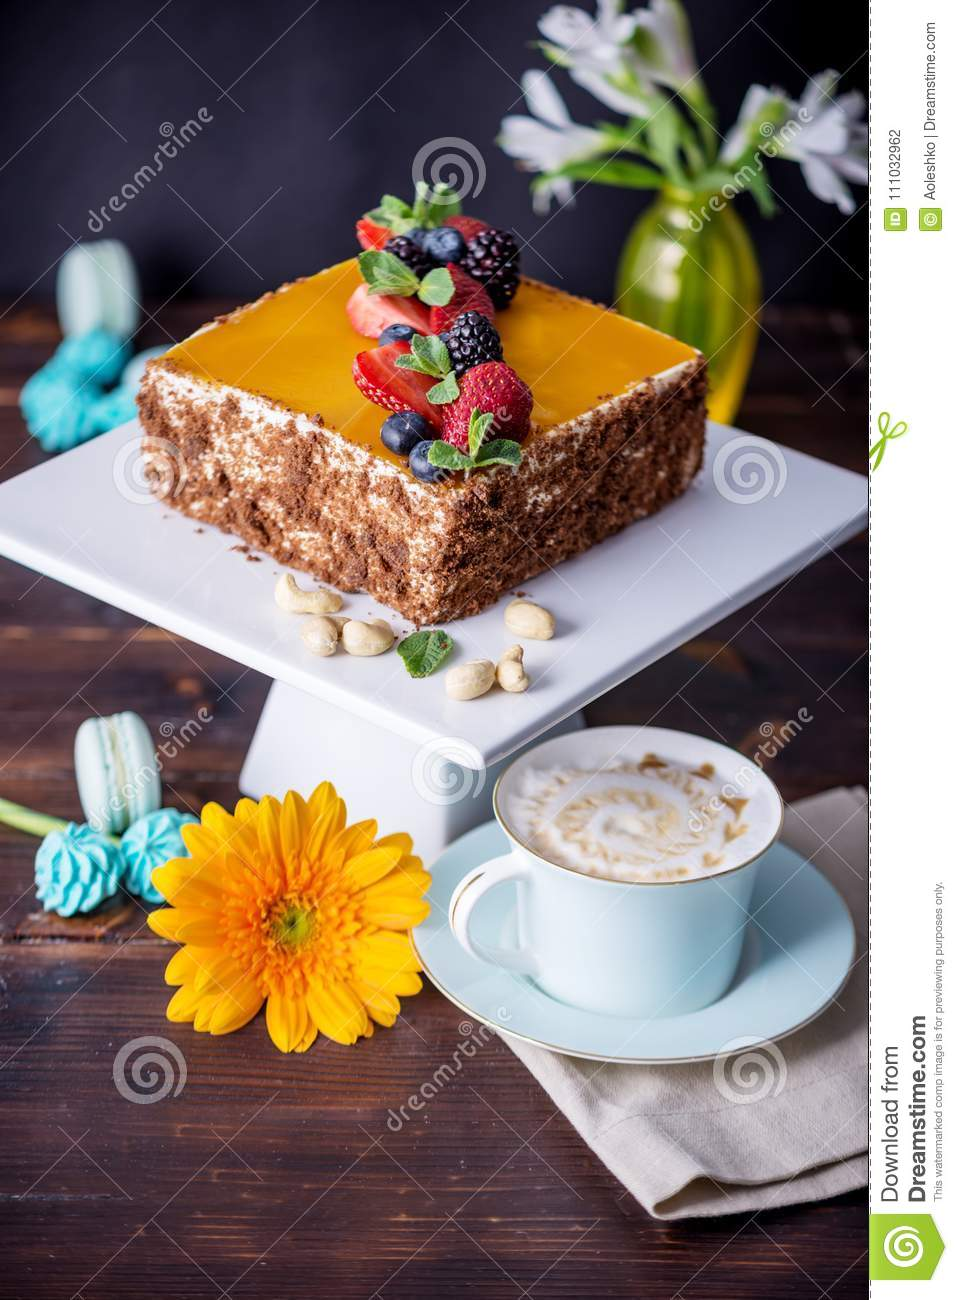 Homemade square cake decorated with yellow jelly on top and berries with mint on dark background